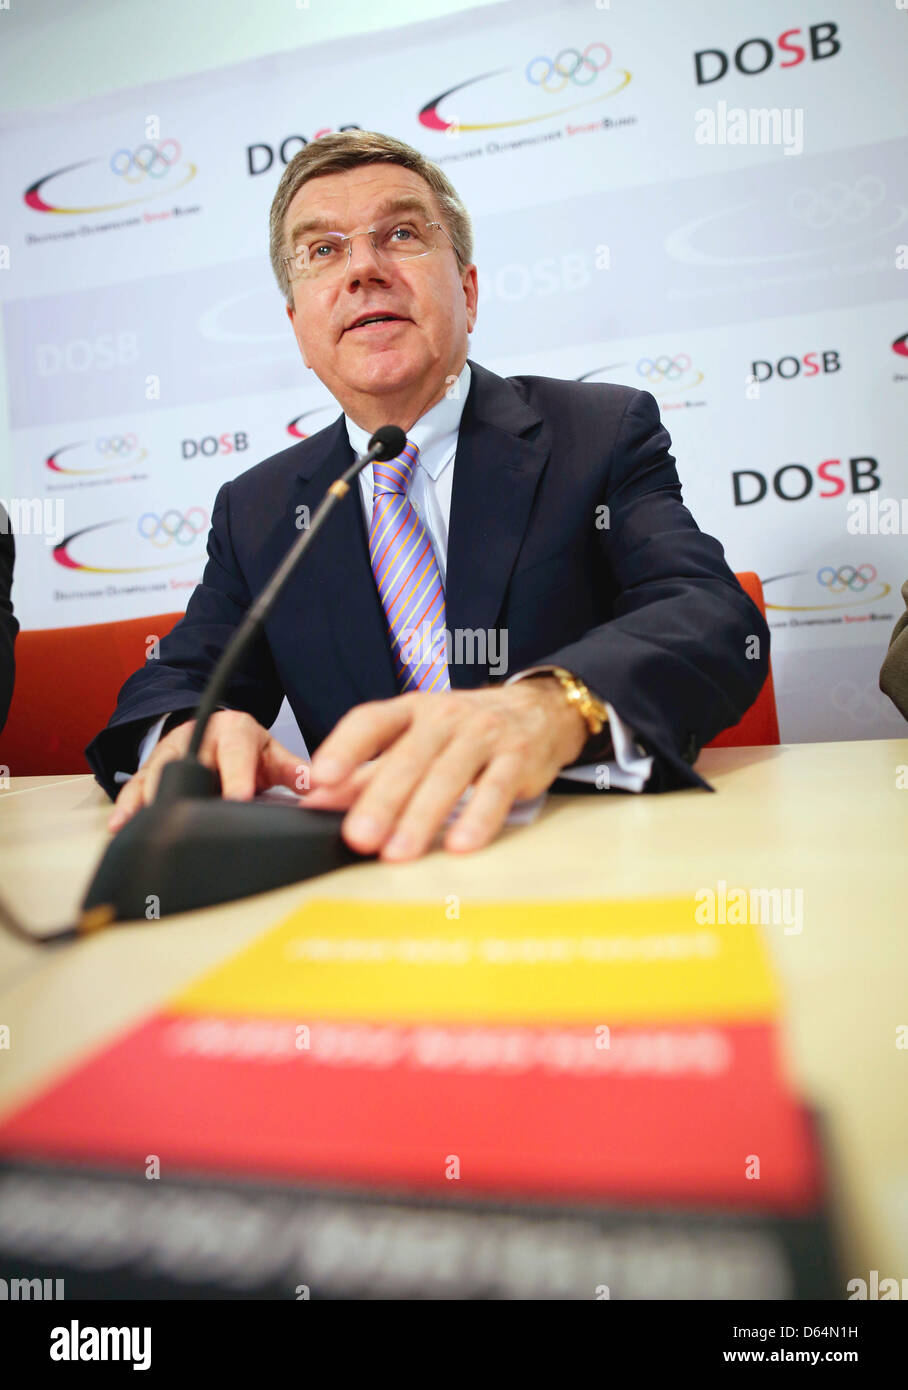 President of the German Olympic Sports Confederation (DOBS) Thomas Bach speaks at a press conference in Frankfurt - Stock Image